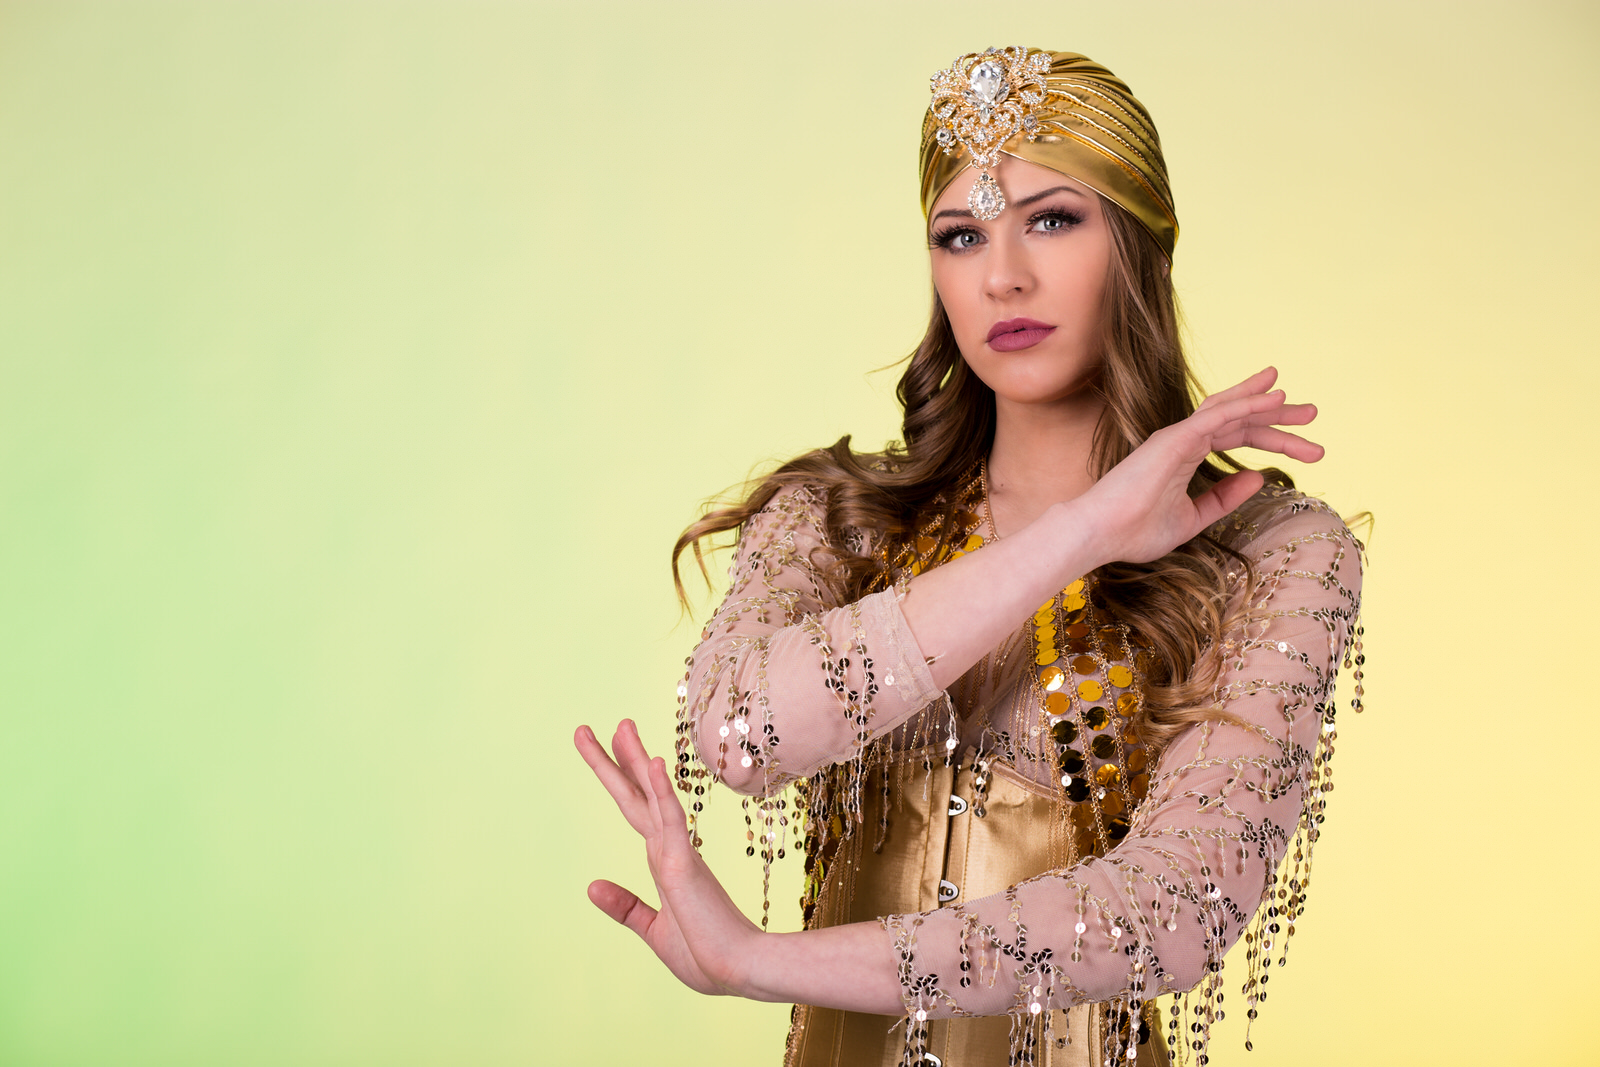 Arabian Dancer, Freestyle Dance Act, Openingsact, Aladin, 1001 Nacht Entertainment, Arabian Events, Promotiedame, Themadames.